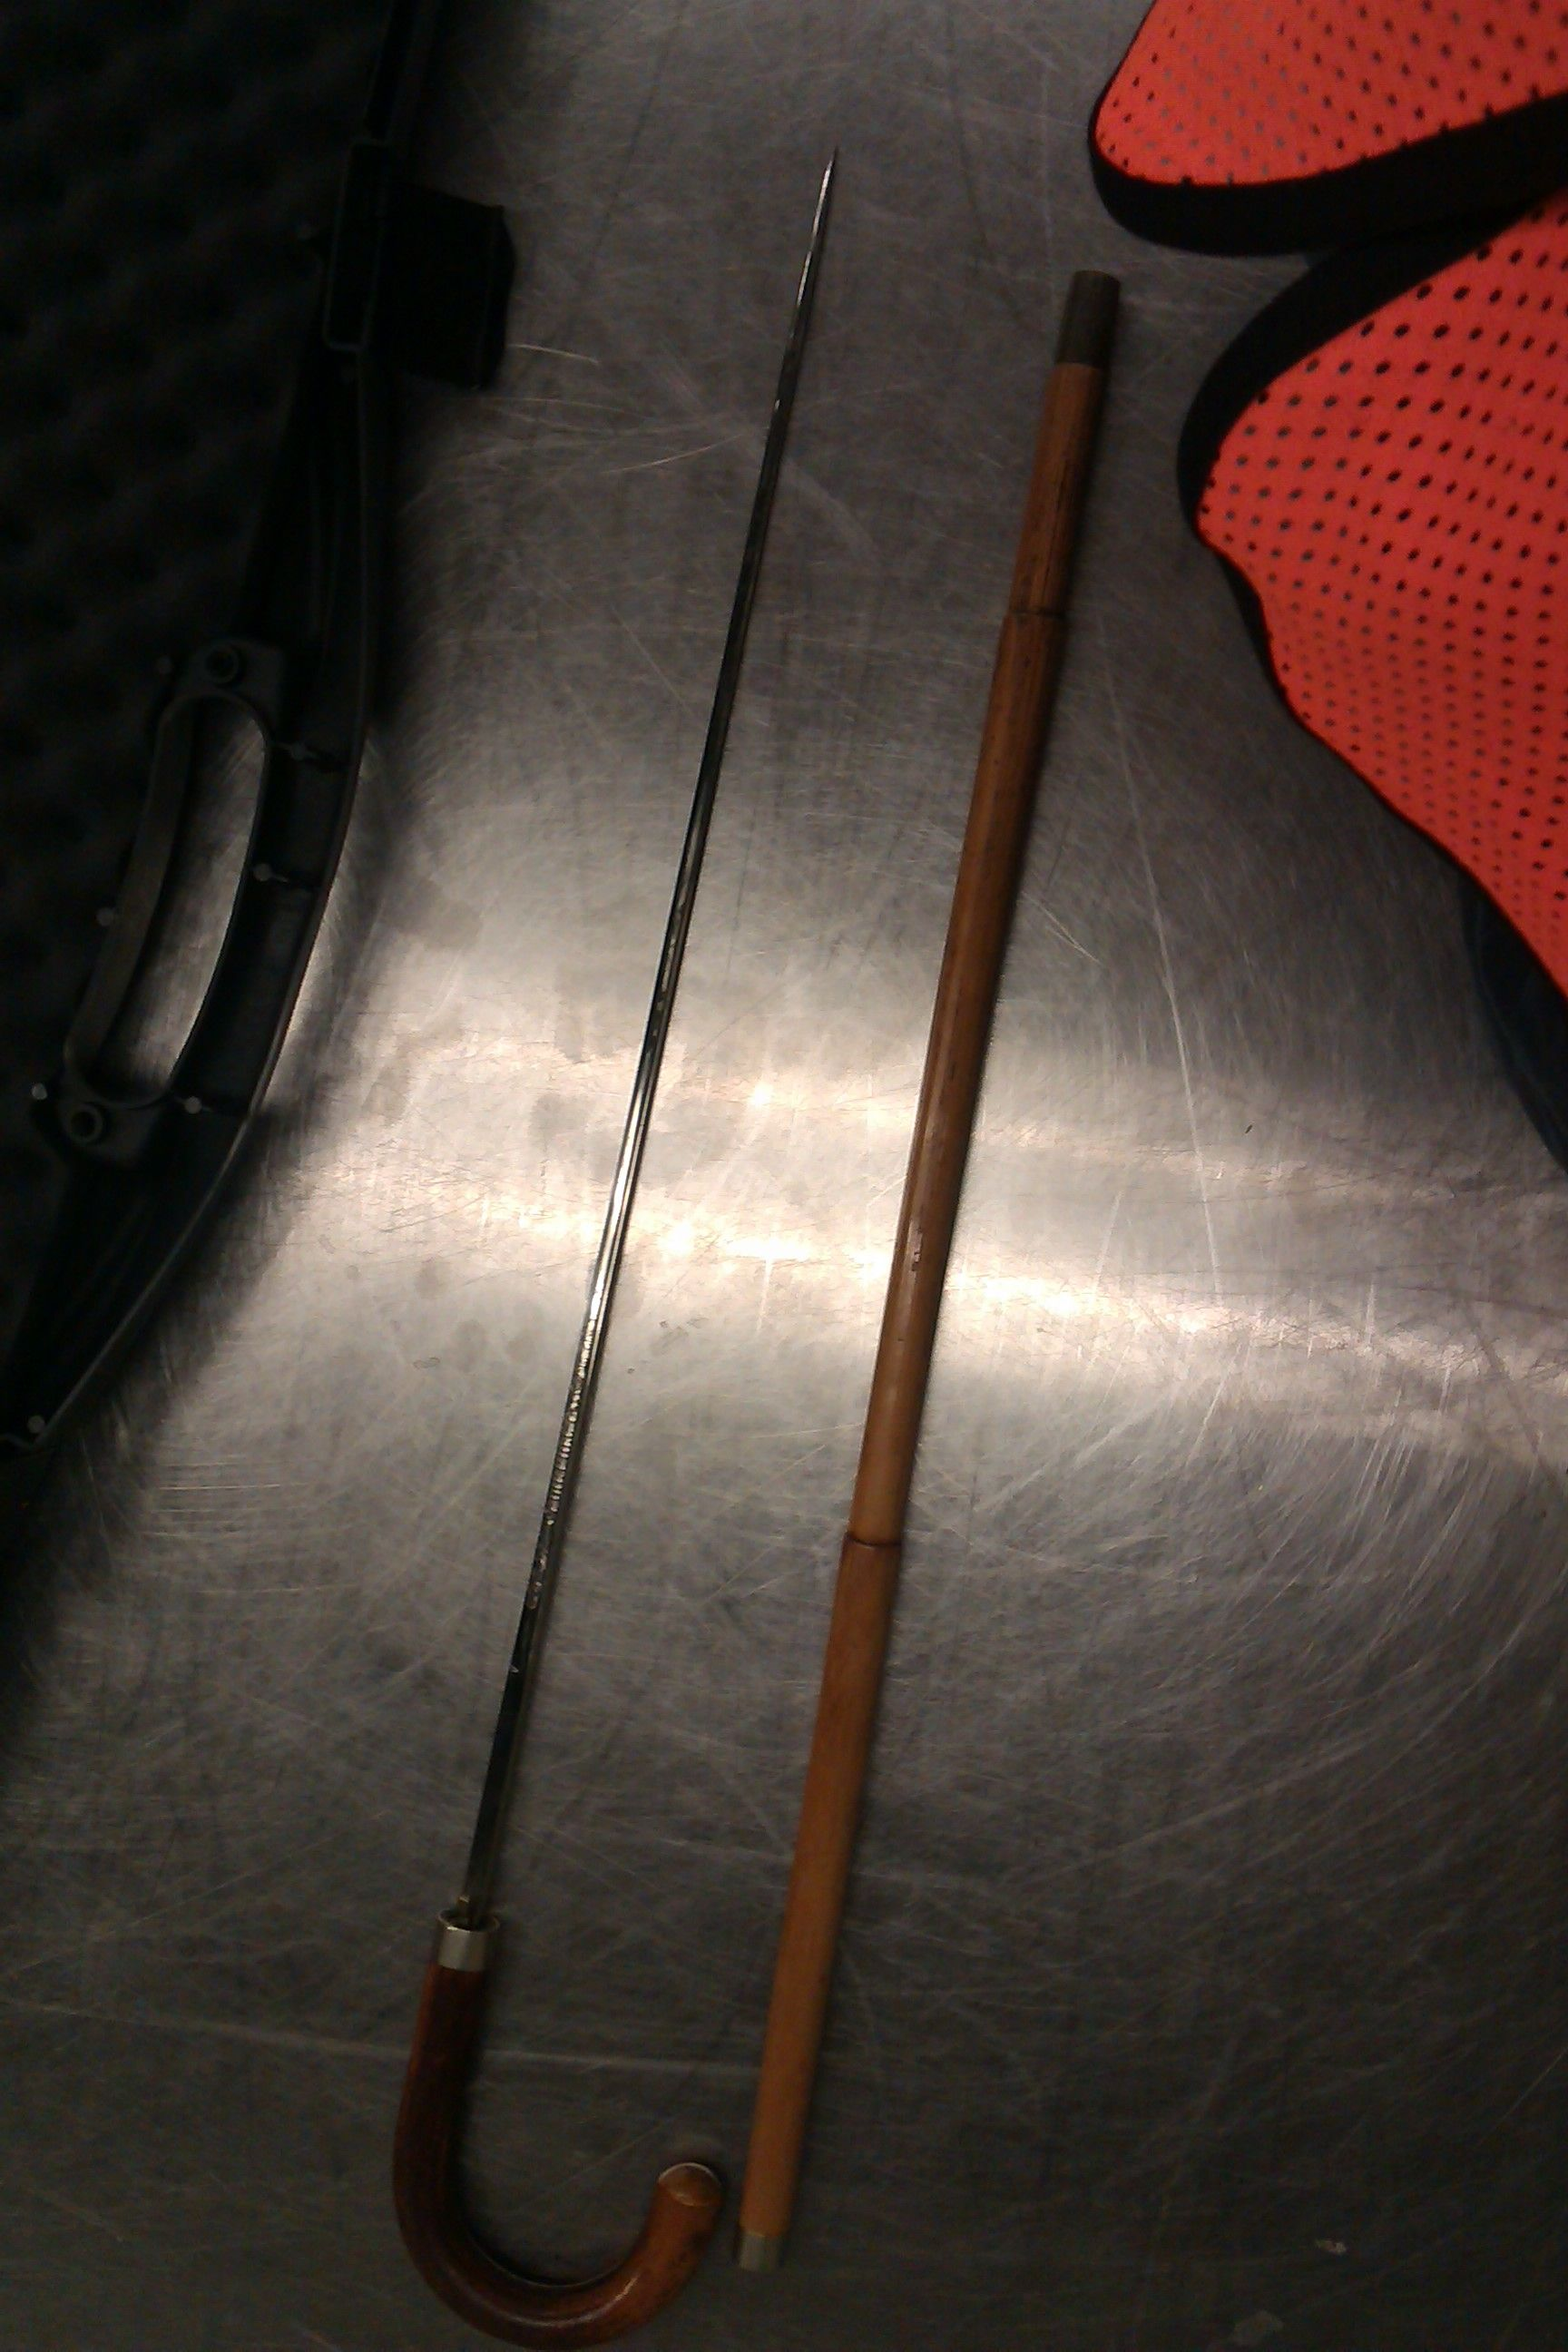 Self-Defense Cane: Hide Your Weapon in Plain Sight ...